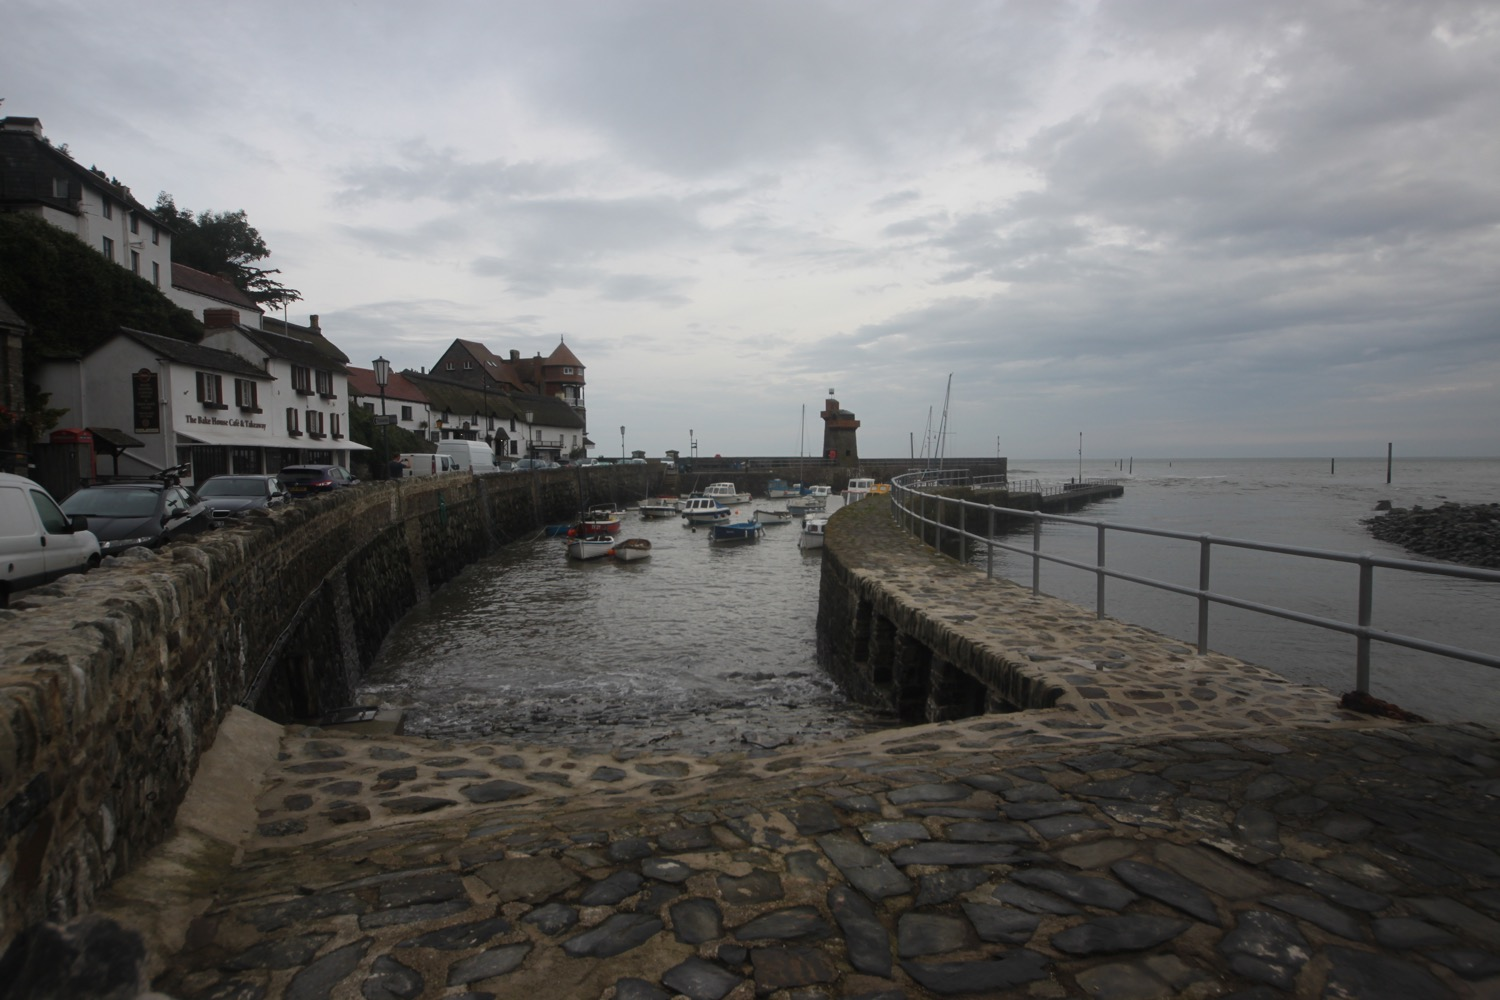 lynmouth harbour 1.jpg